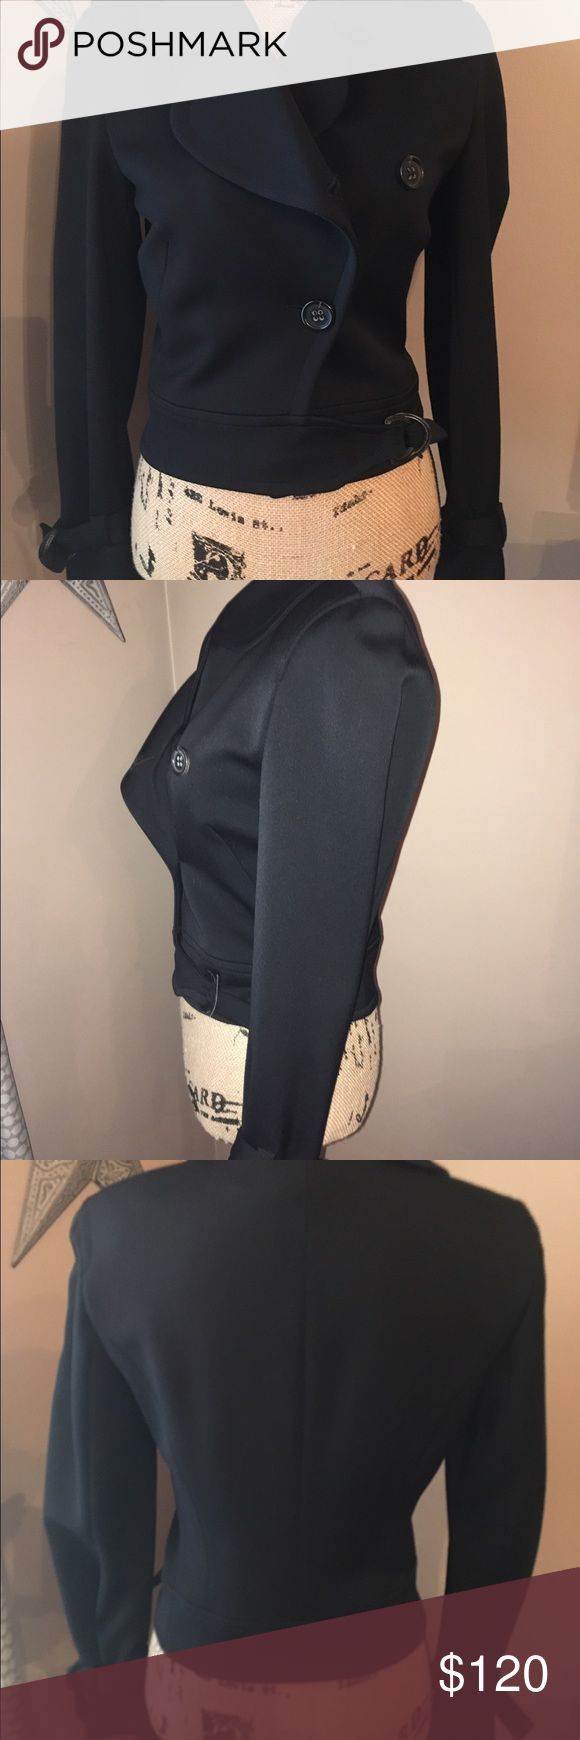 """Rene Lezard Black Jacket Coat NWOT'S This is a beautiful designer jacket by Rene Lezard.  It's a size European 34, so it's about a size 2, and the measurements are: Armpit to armpit is 17"""", sleeves are 25"""", and length is 19.5.  It is 96% wool, and 4% spandex.  It has buttons and straps at the end of the sleeves for added detail.  I bought this and it was too small and has never been worn, but the tags were removed.  Nice designer jacket. Rene Lezard Jackets & Coats"""